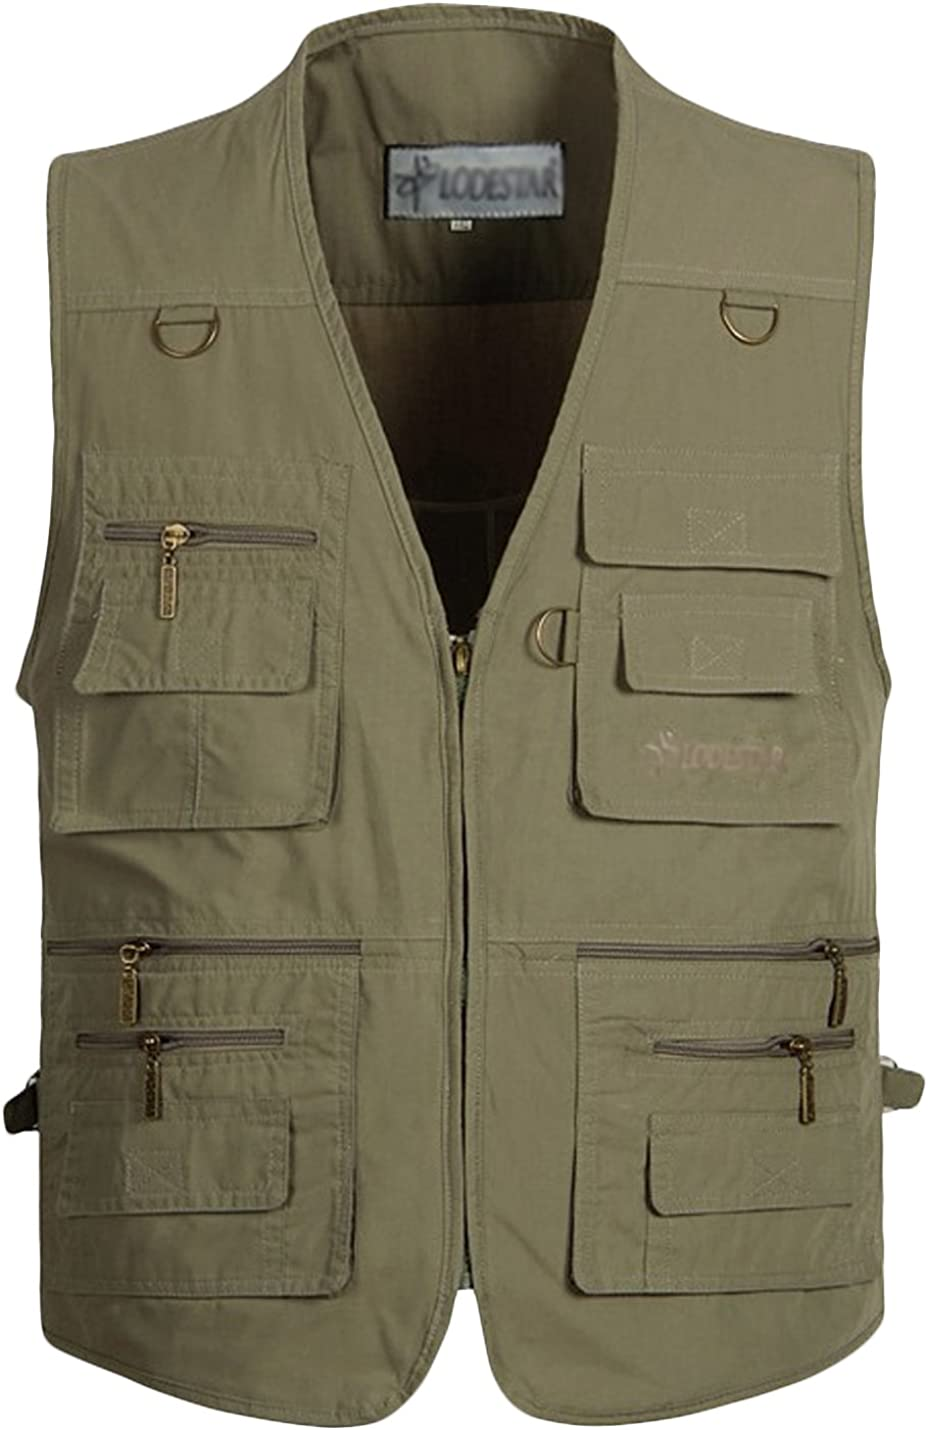 Uaneo Men's Lightweight Outdoor Photography Fishing Vest Jacket with Multi Pockets (Army Green, XX-Large)